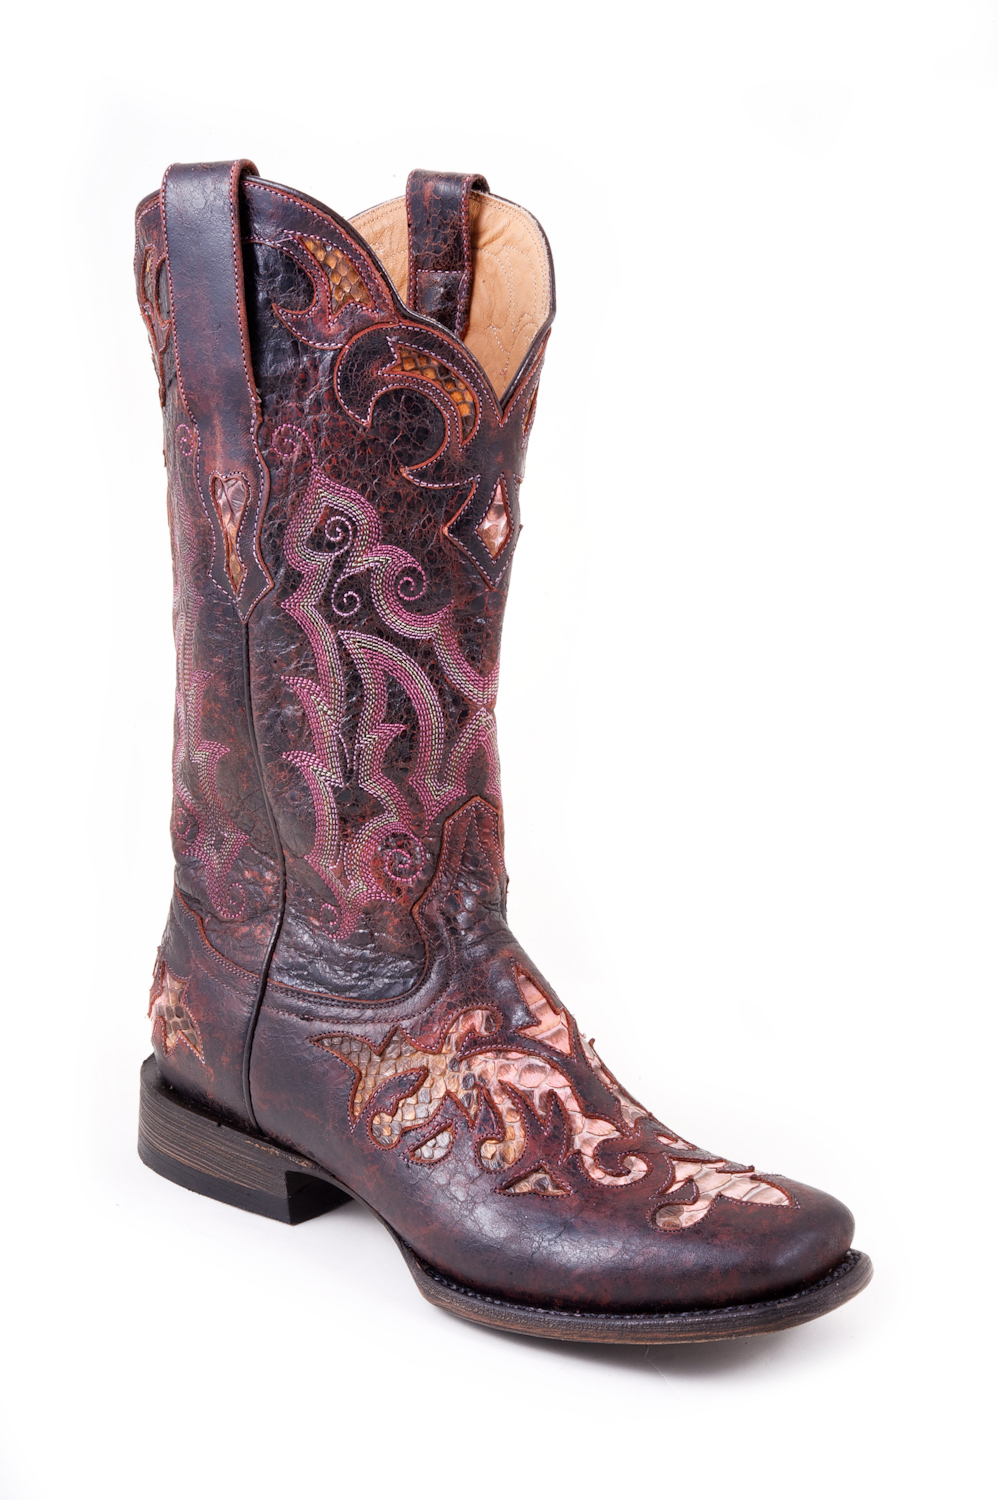 nib stetson cowboy boots distressed pink leather